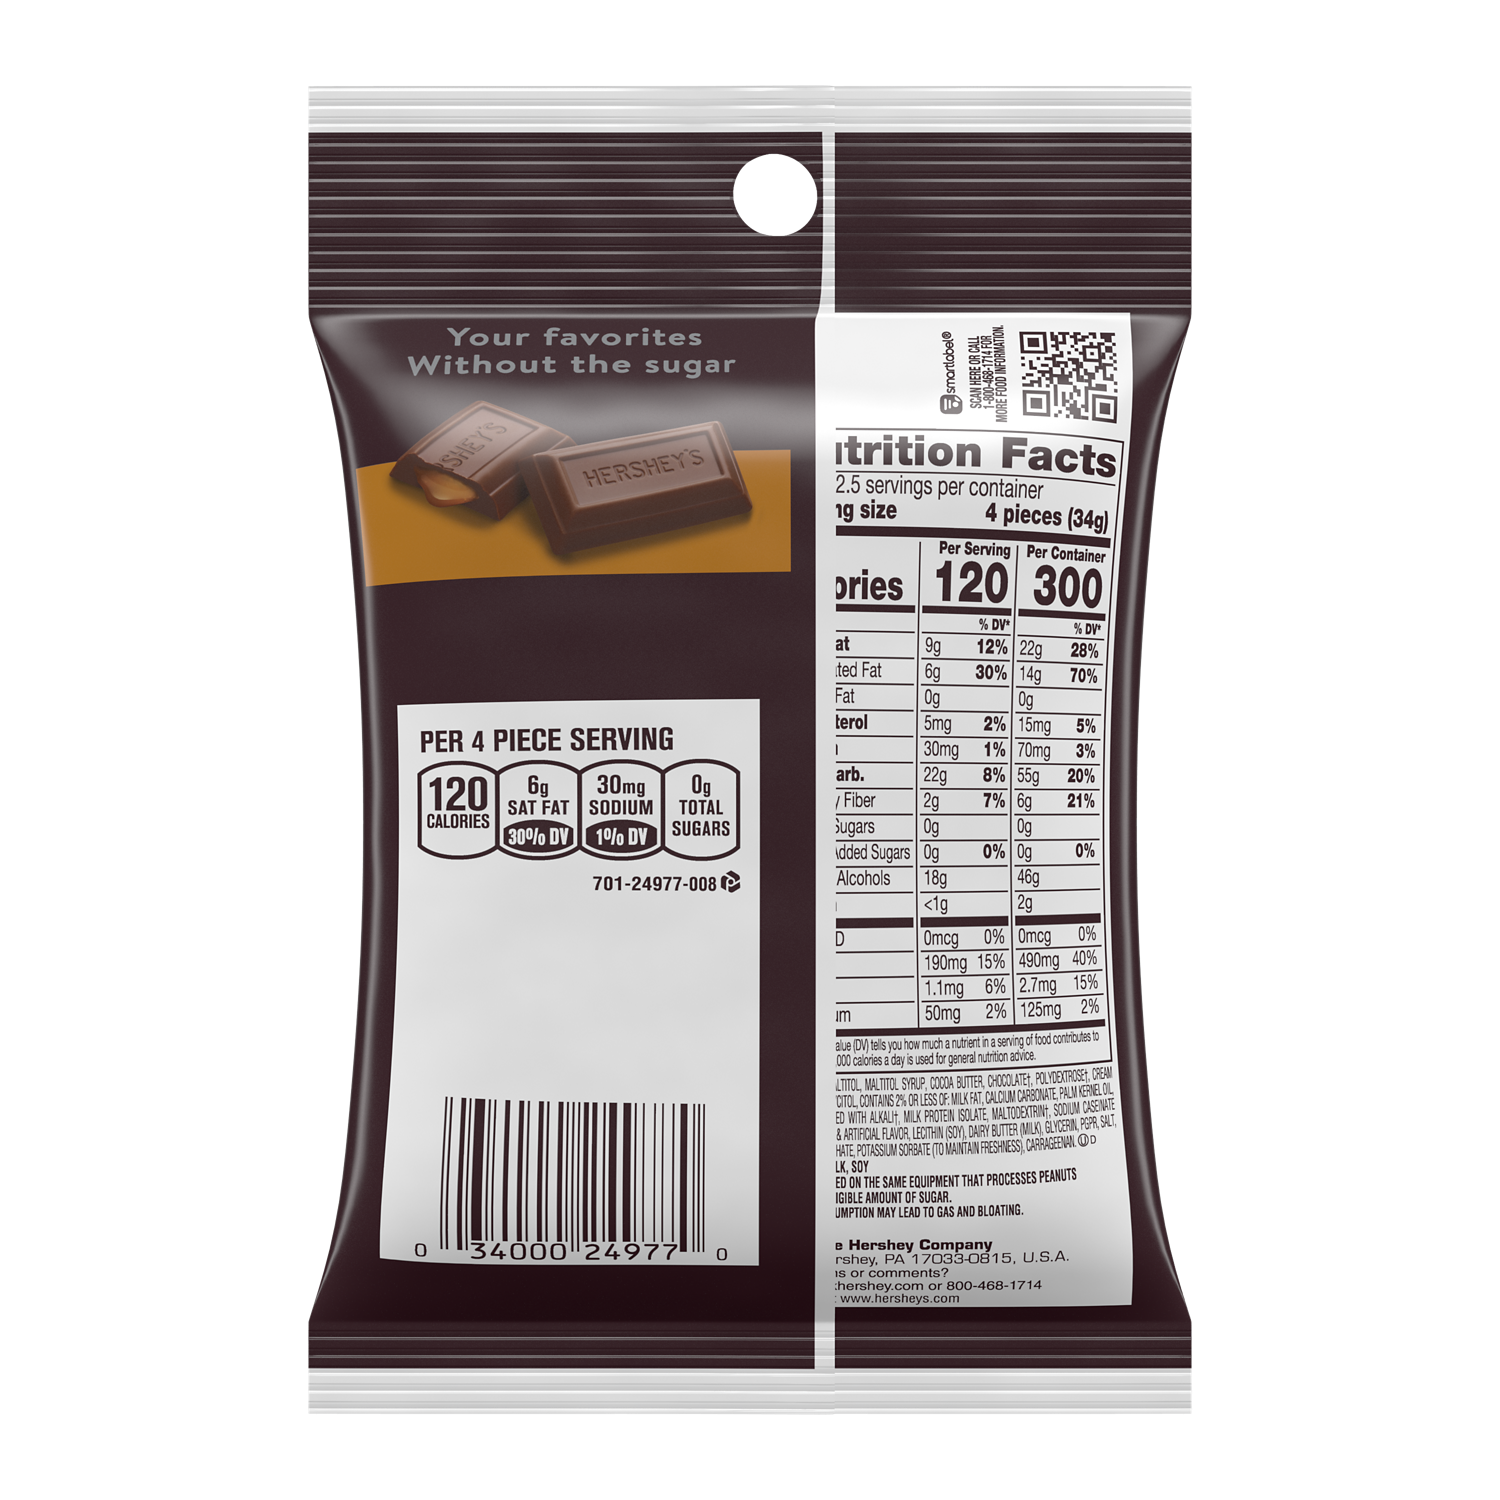 HERSHEY'S Zero Sugar Caramel Filled Chocolate Candy, 3 oz bag - Back of Package